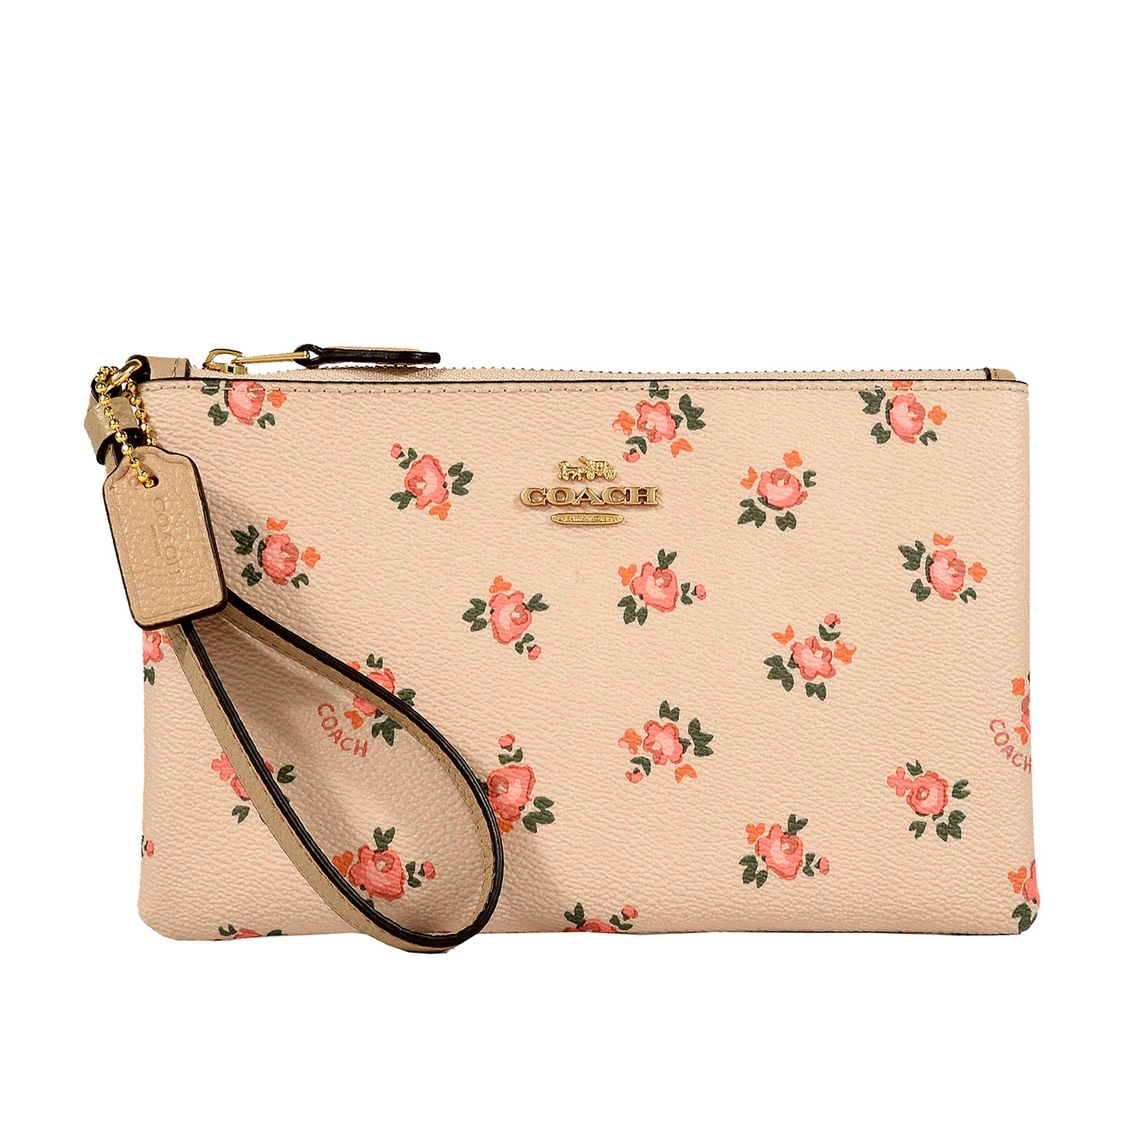 Coach Small Wristlet With Floral Bloom Print   Wristlets, Clutches ... fa2c653bf7